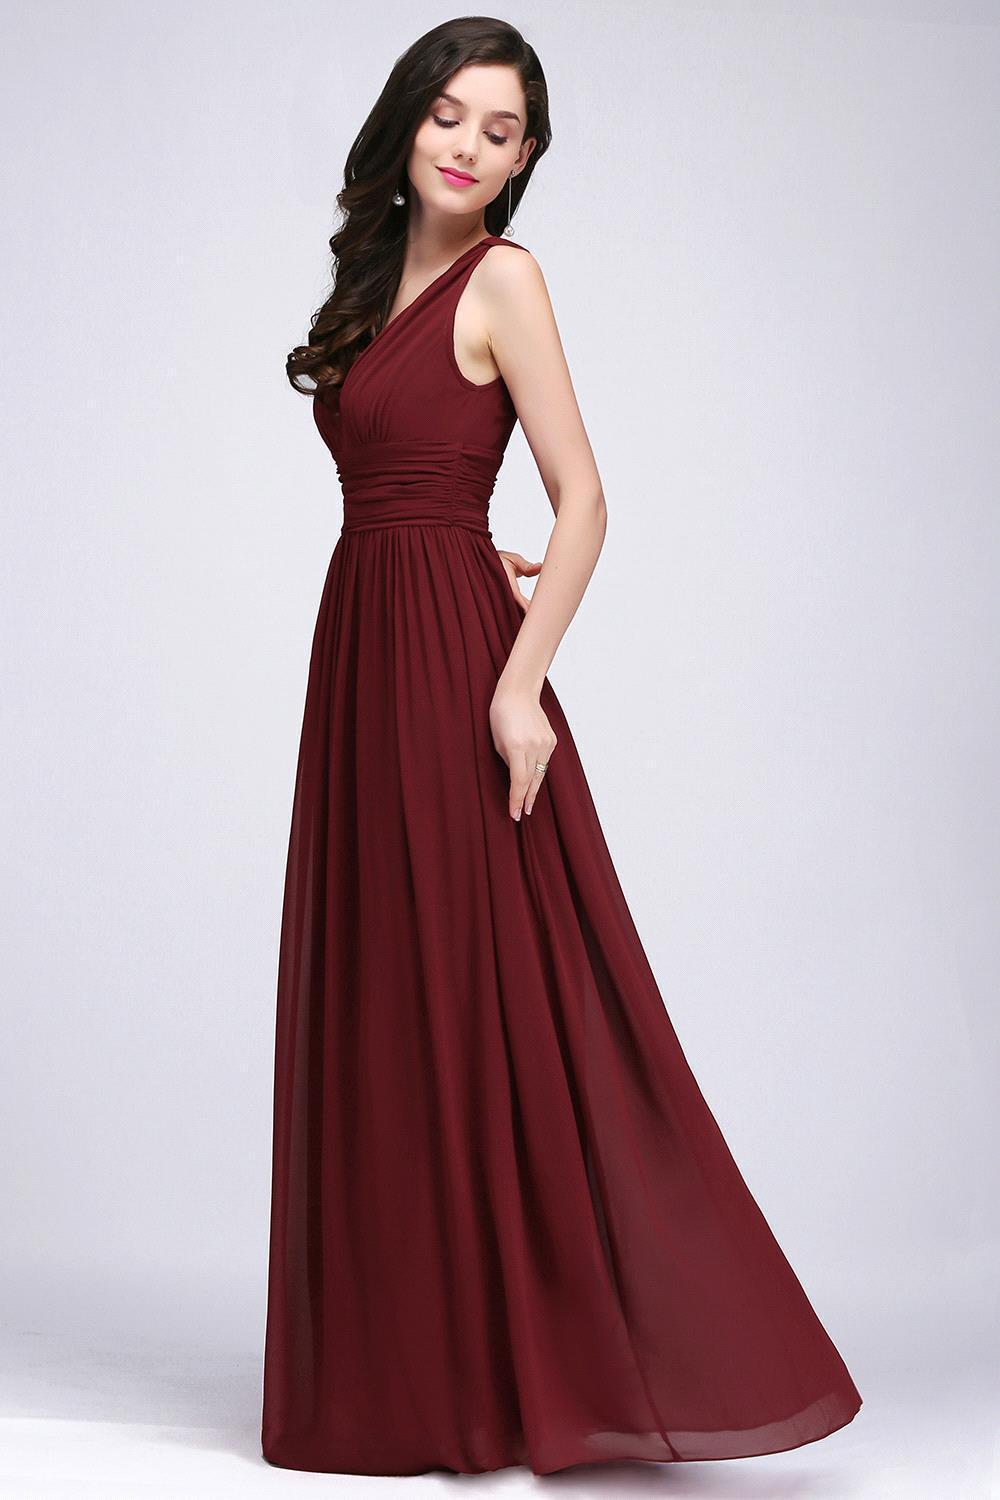 Online shop robe demoiselle dhonneur a line burgundy chiffon online shop robe demoiselle dhonneur a line burgundy chiffon bridesmaid dresses long 2017 sexy v neck prom dresses party gown aliexpress mobile ombrellifo Gallery